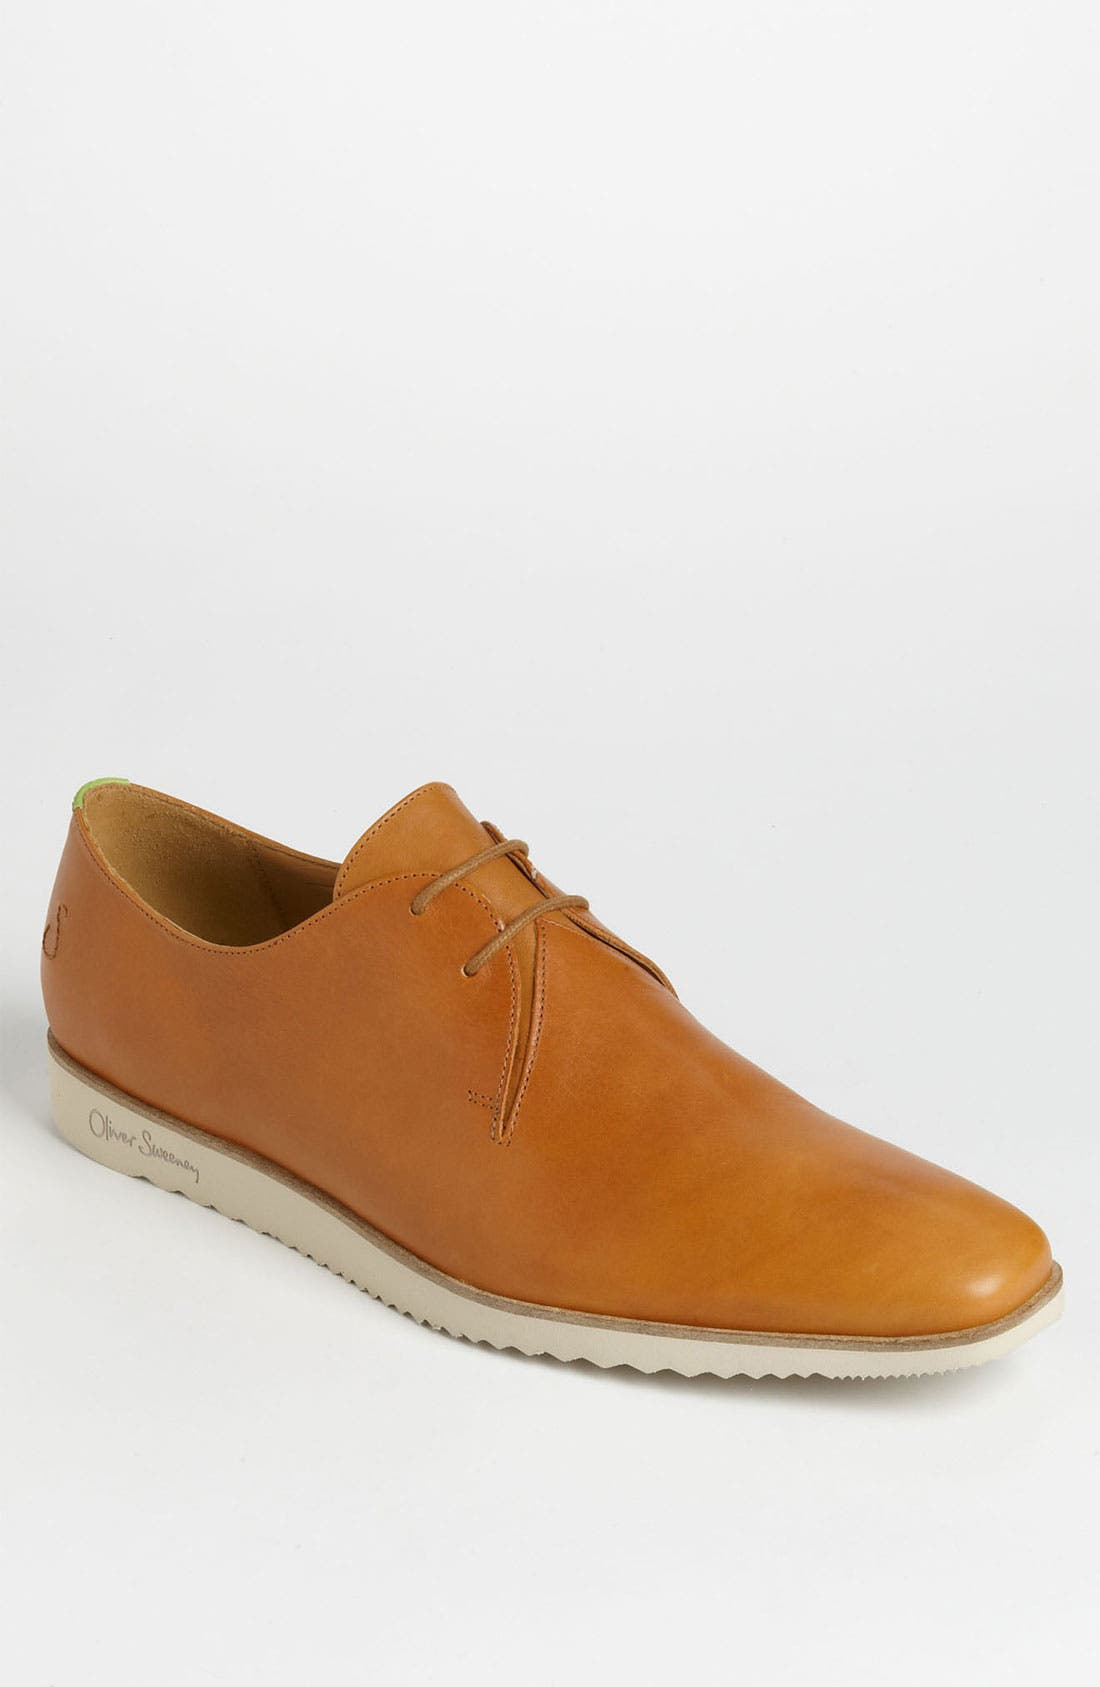 Main Image - Oliver Sweeney 'Rigo' Wholecut Oxford